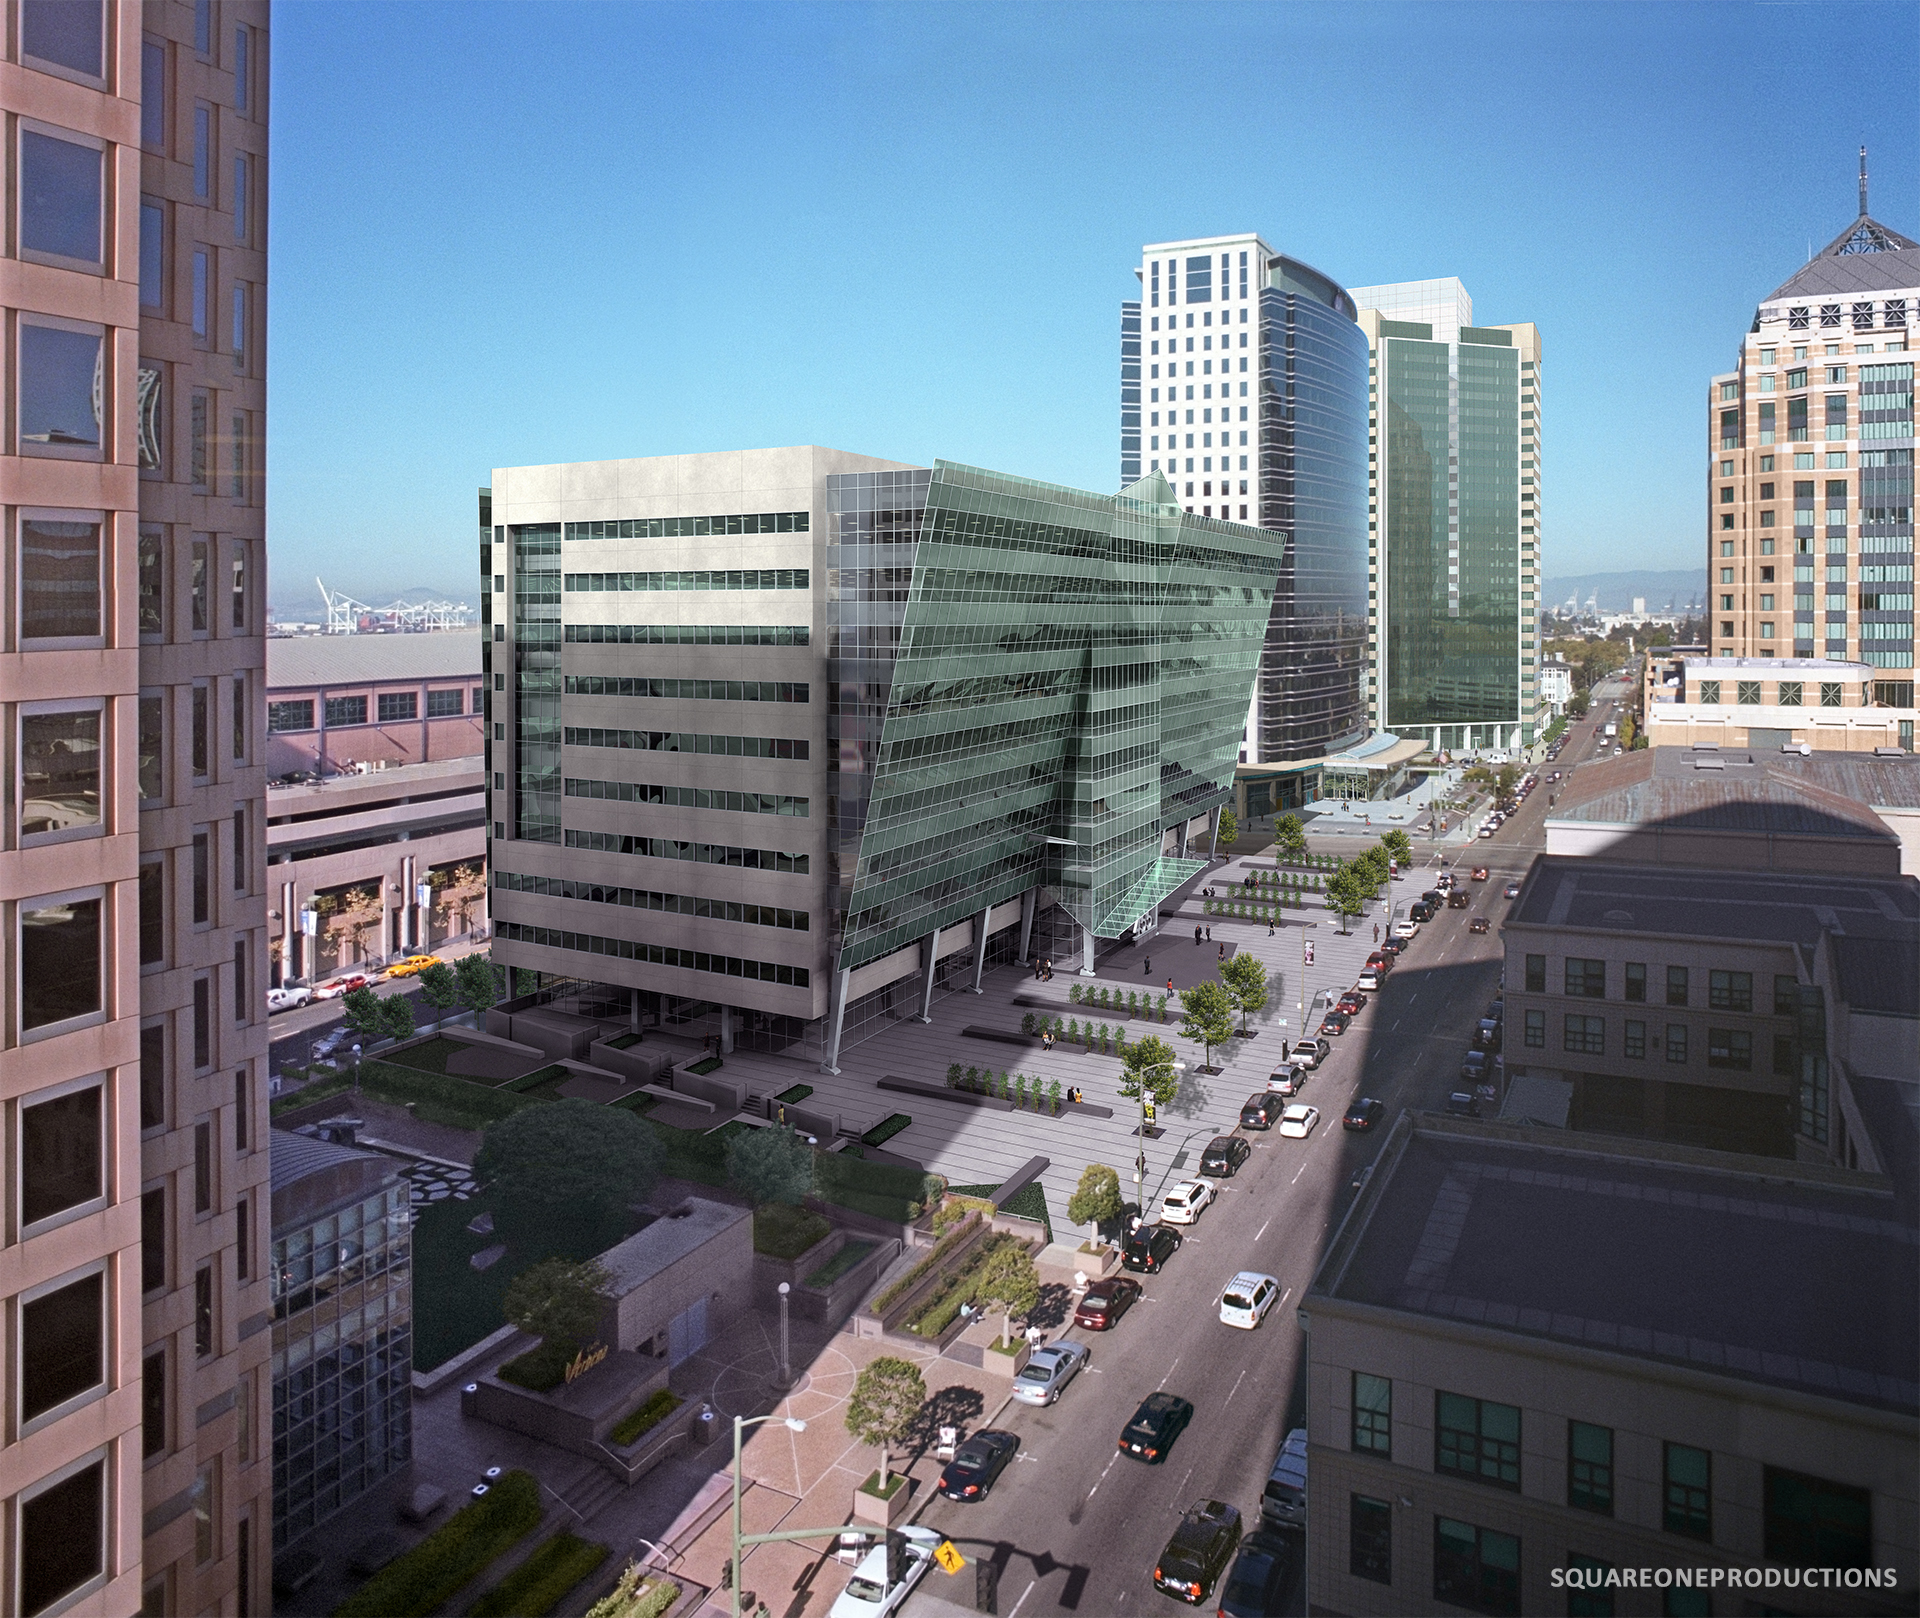 The Oakland City Center   City: Oakland  County: Alameda  Client: John Dolby/ Shorenstein Realty Services